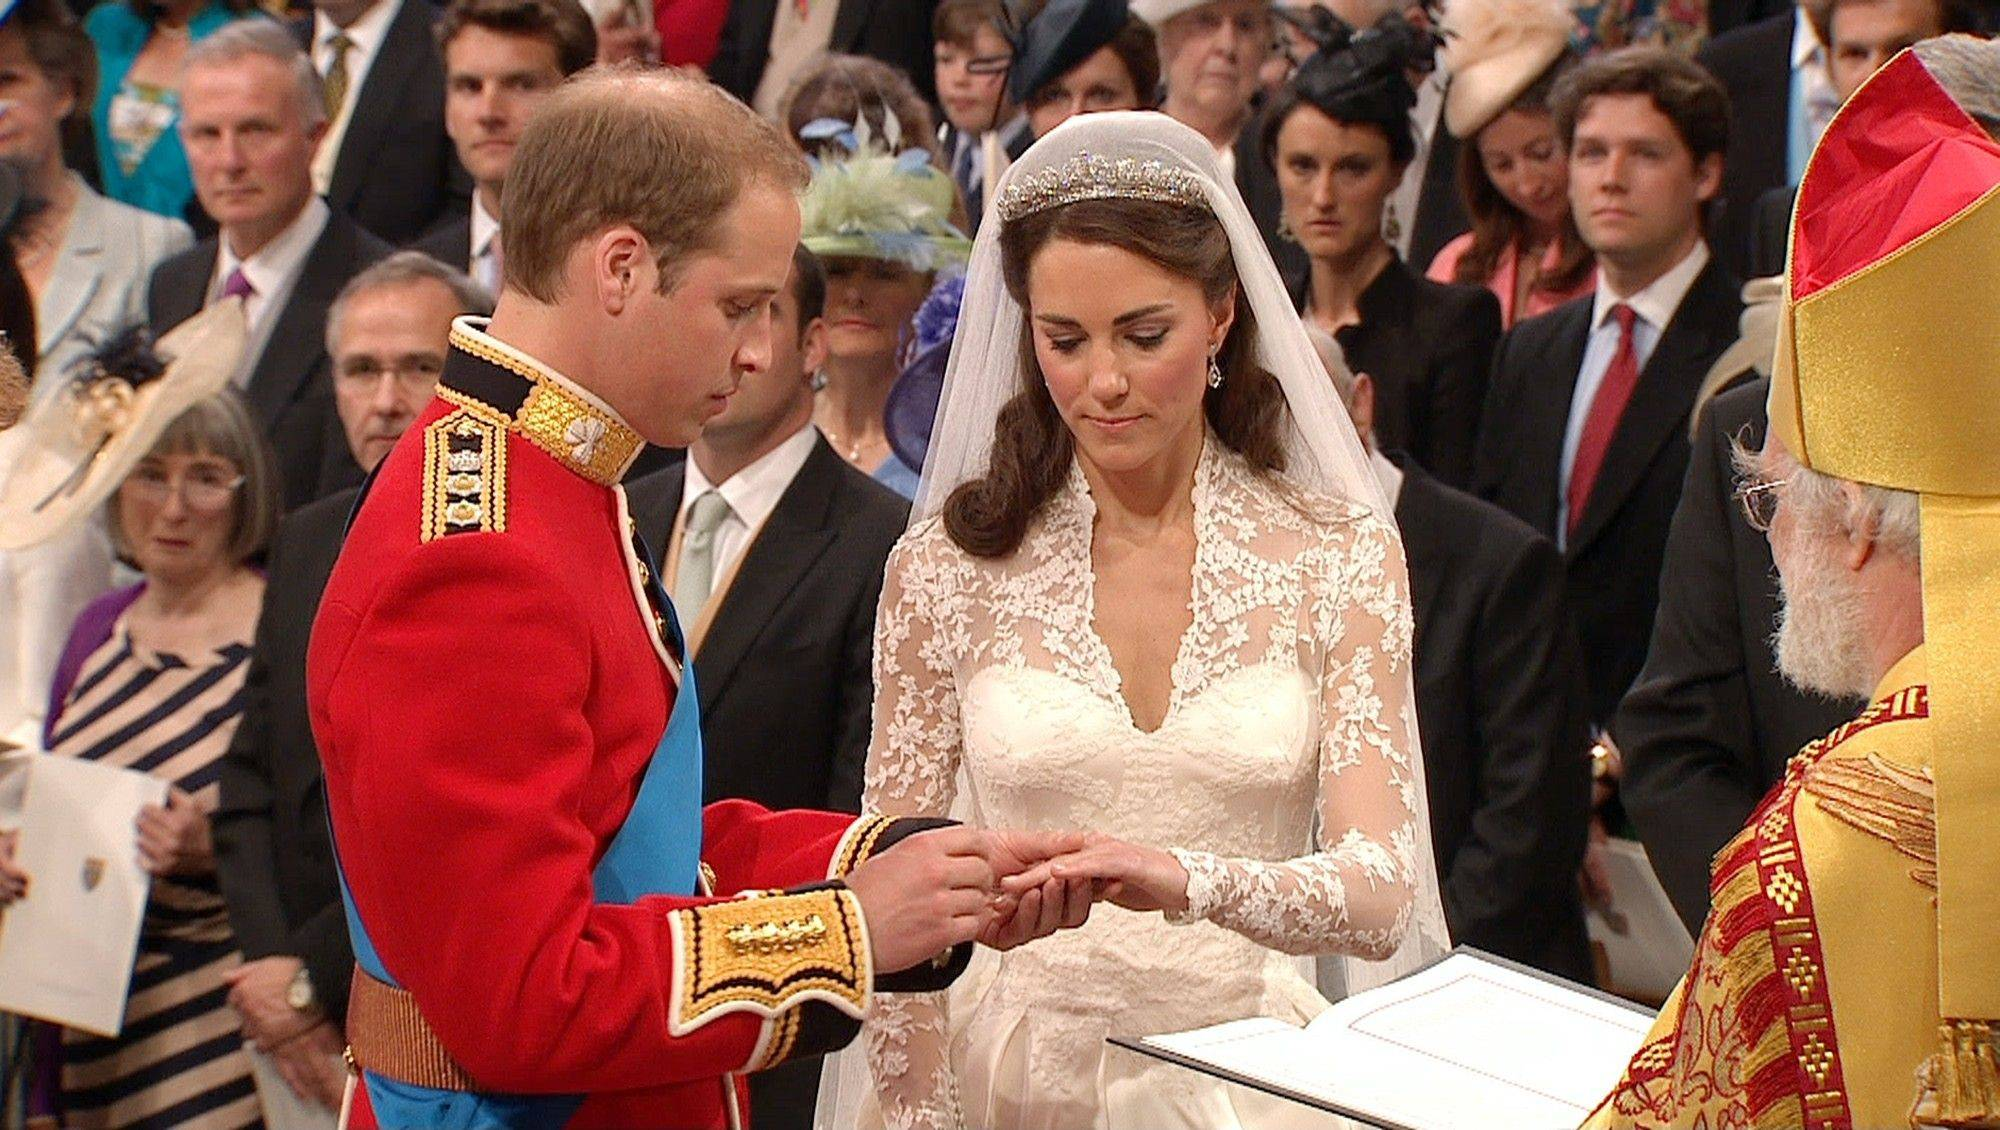 Britain's Prince William, left, places the ring on the finger of his bride, Kate Middleton, as they stand at the altar at Westminster Abbey for the Royal Wedding in London on Friday, April, 29, 2011.